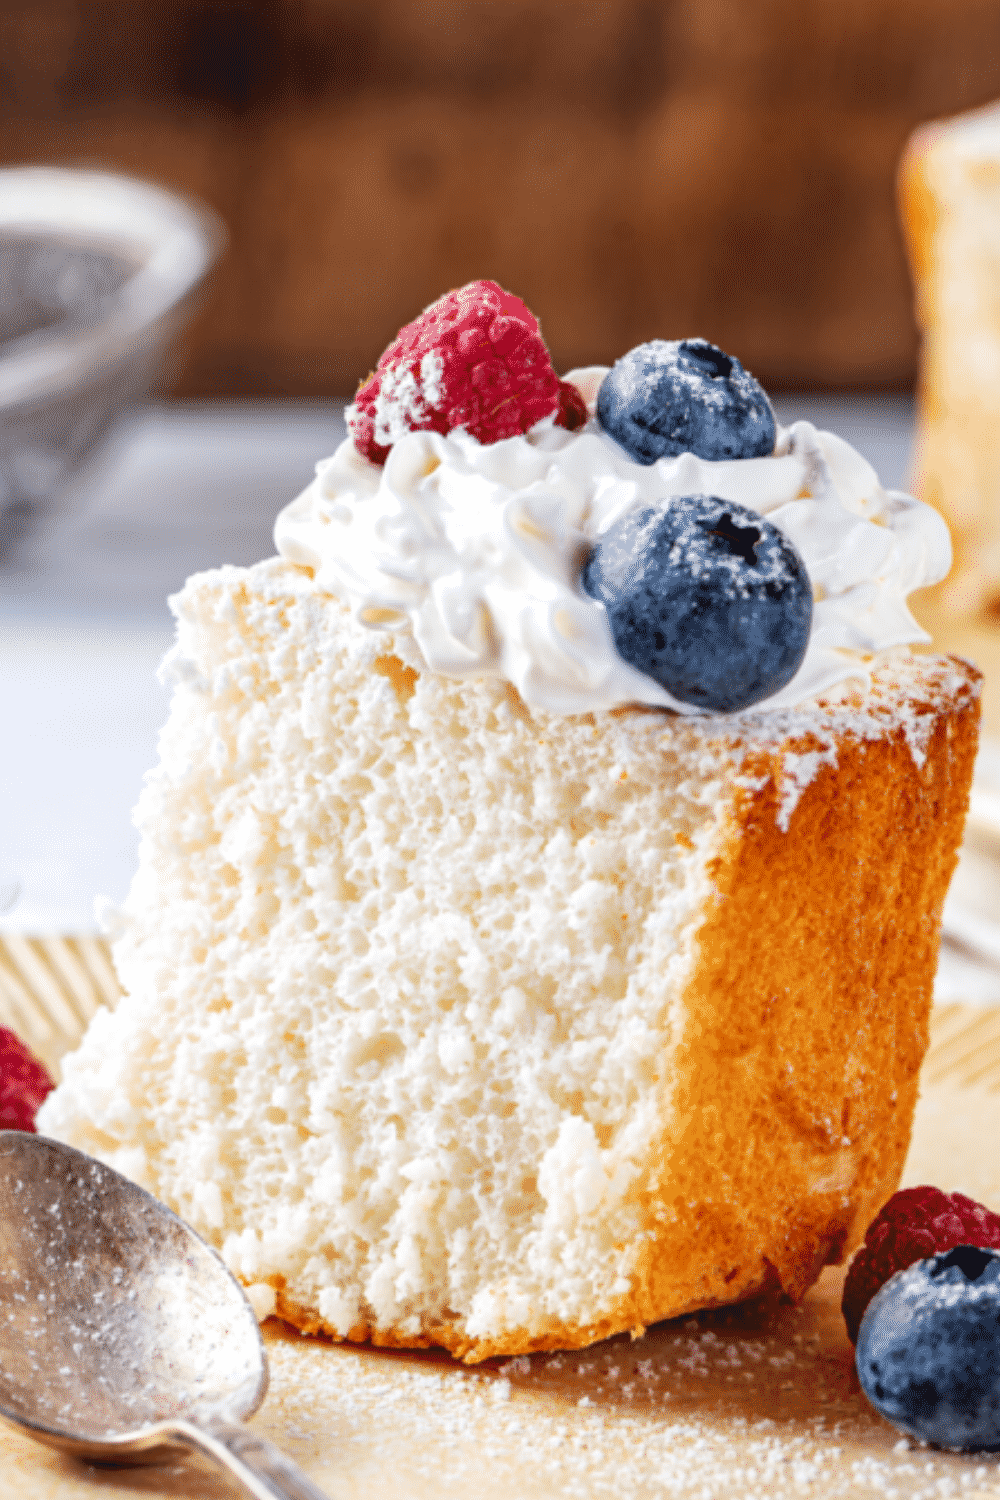 A piece of angel food cake on a plate.